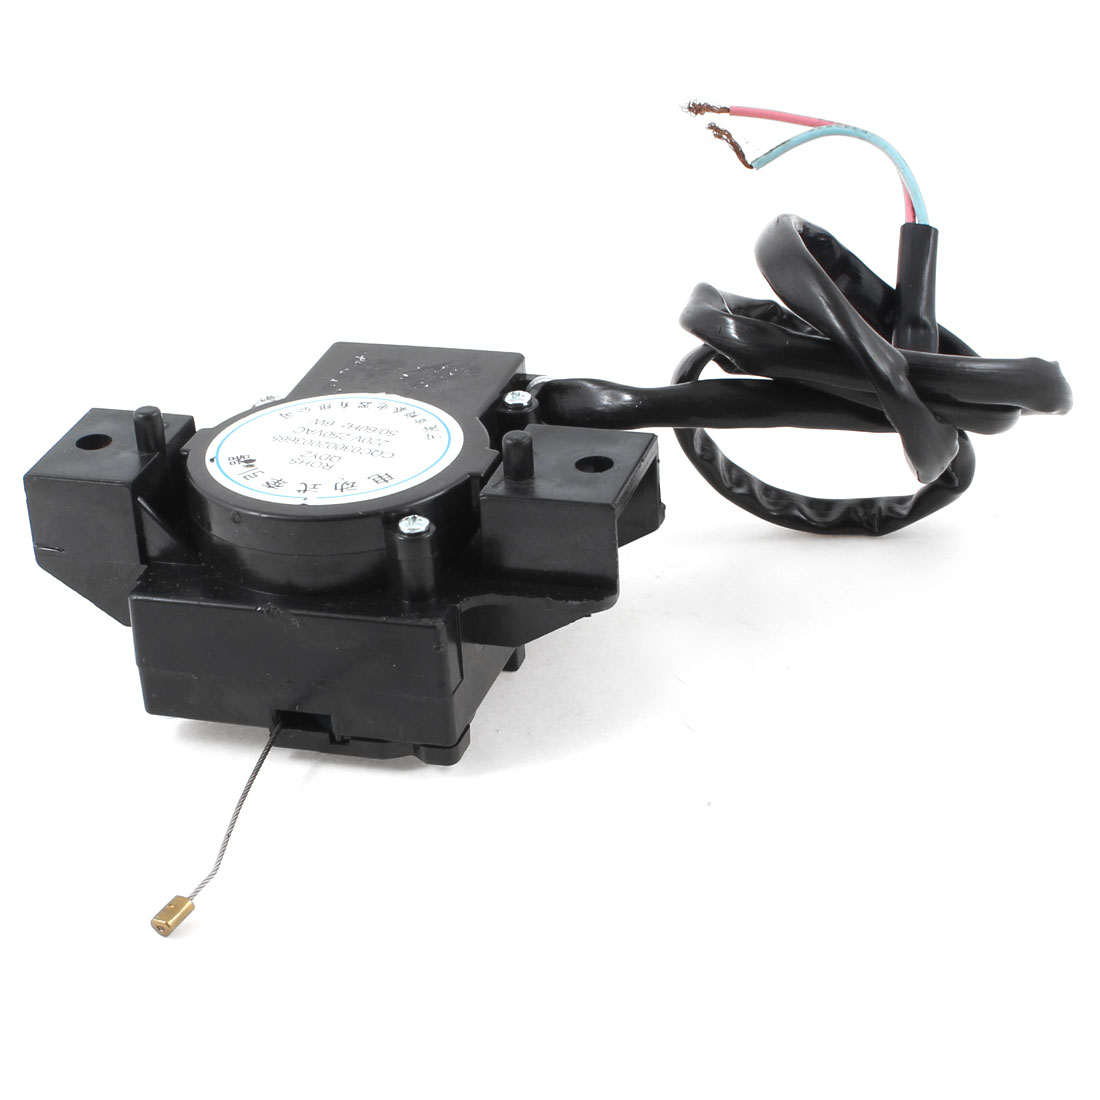 AC 220V-250V 50/60Hz 2 Cable Drain Motor Tractor Retractor for Sanyo Washing Machine